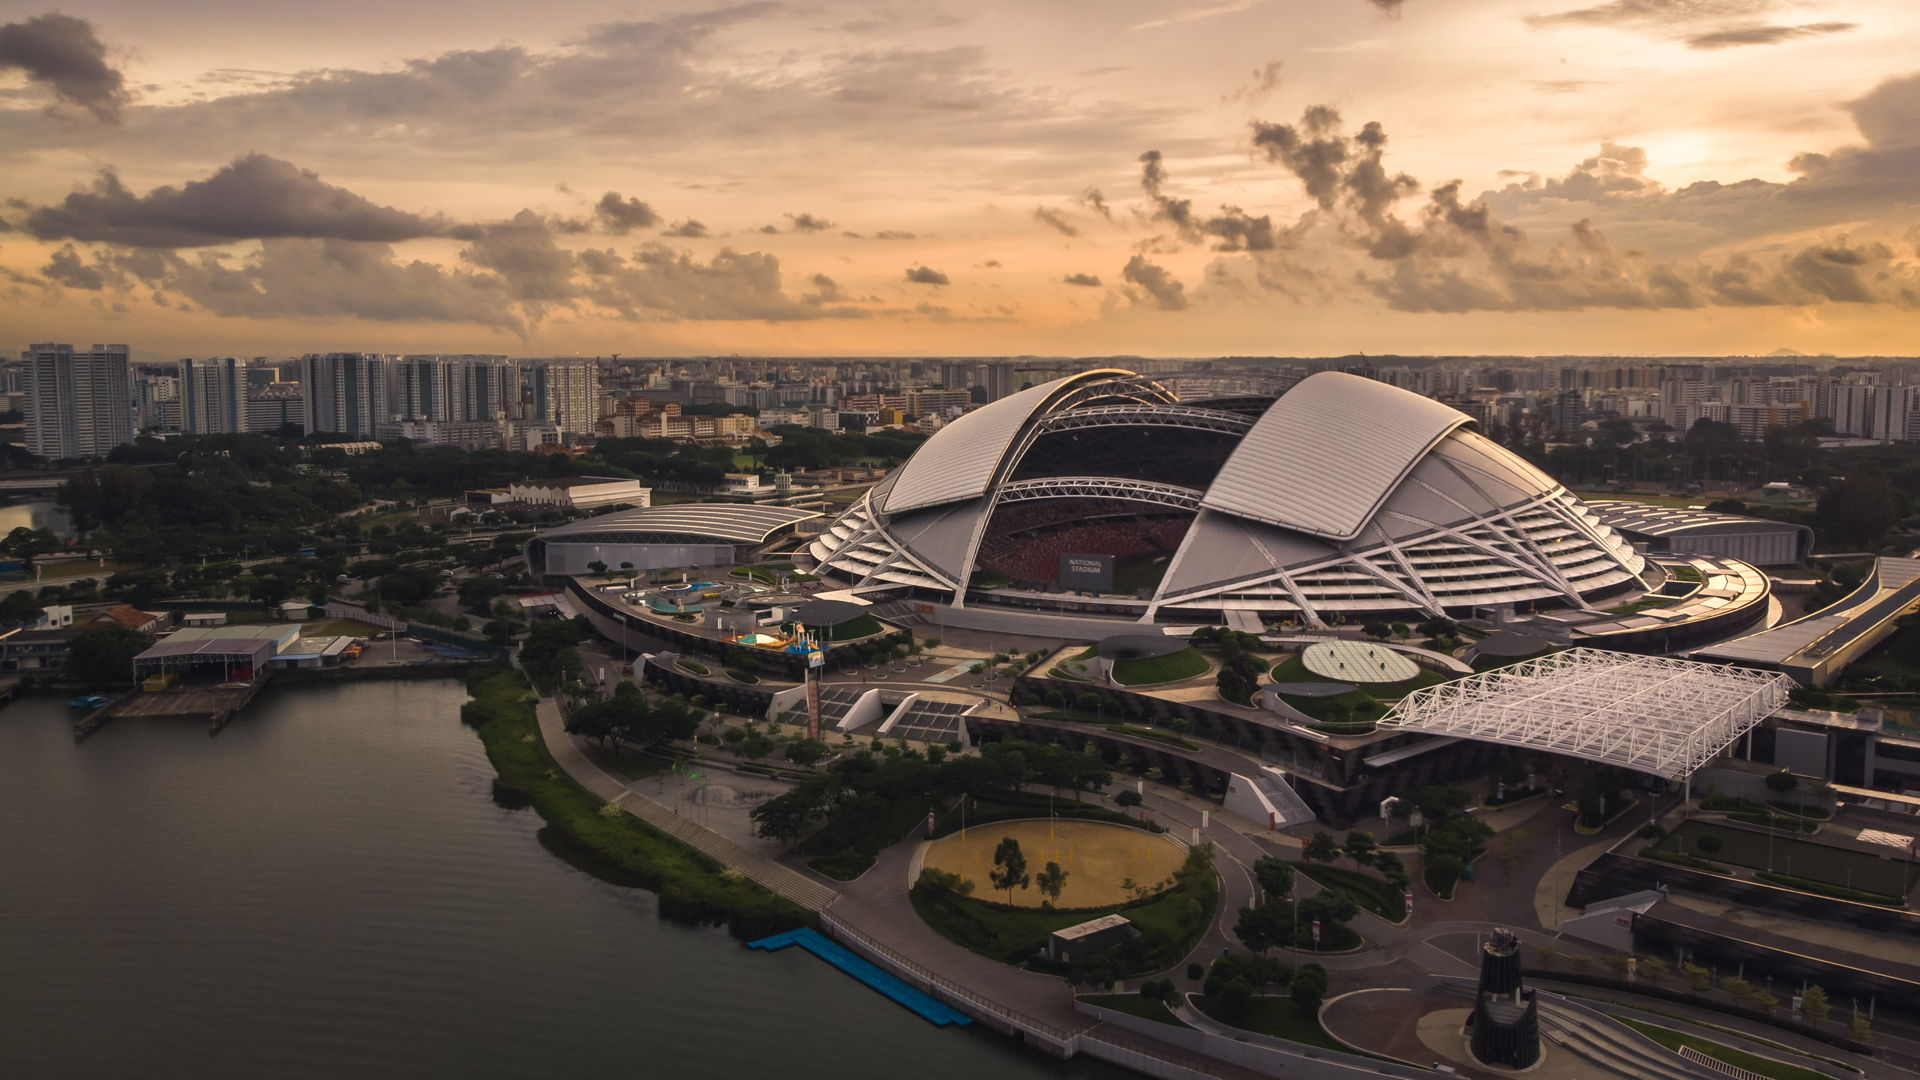 national stadium of singapore, singapore stadium drone, aerial view of national stadium of singapore, sunrise singapore stadium, drone sunrise national stadium singapore, stadium aerial, drone stadium, drone singapore, where to fly drone at singapore, singapore drone guidelines, best drone places singapore, singapore laws, singapore regulations